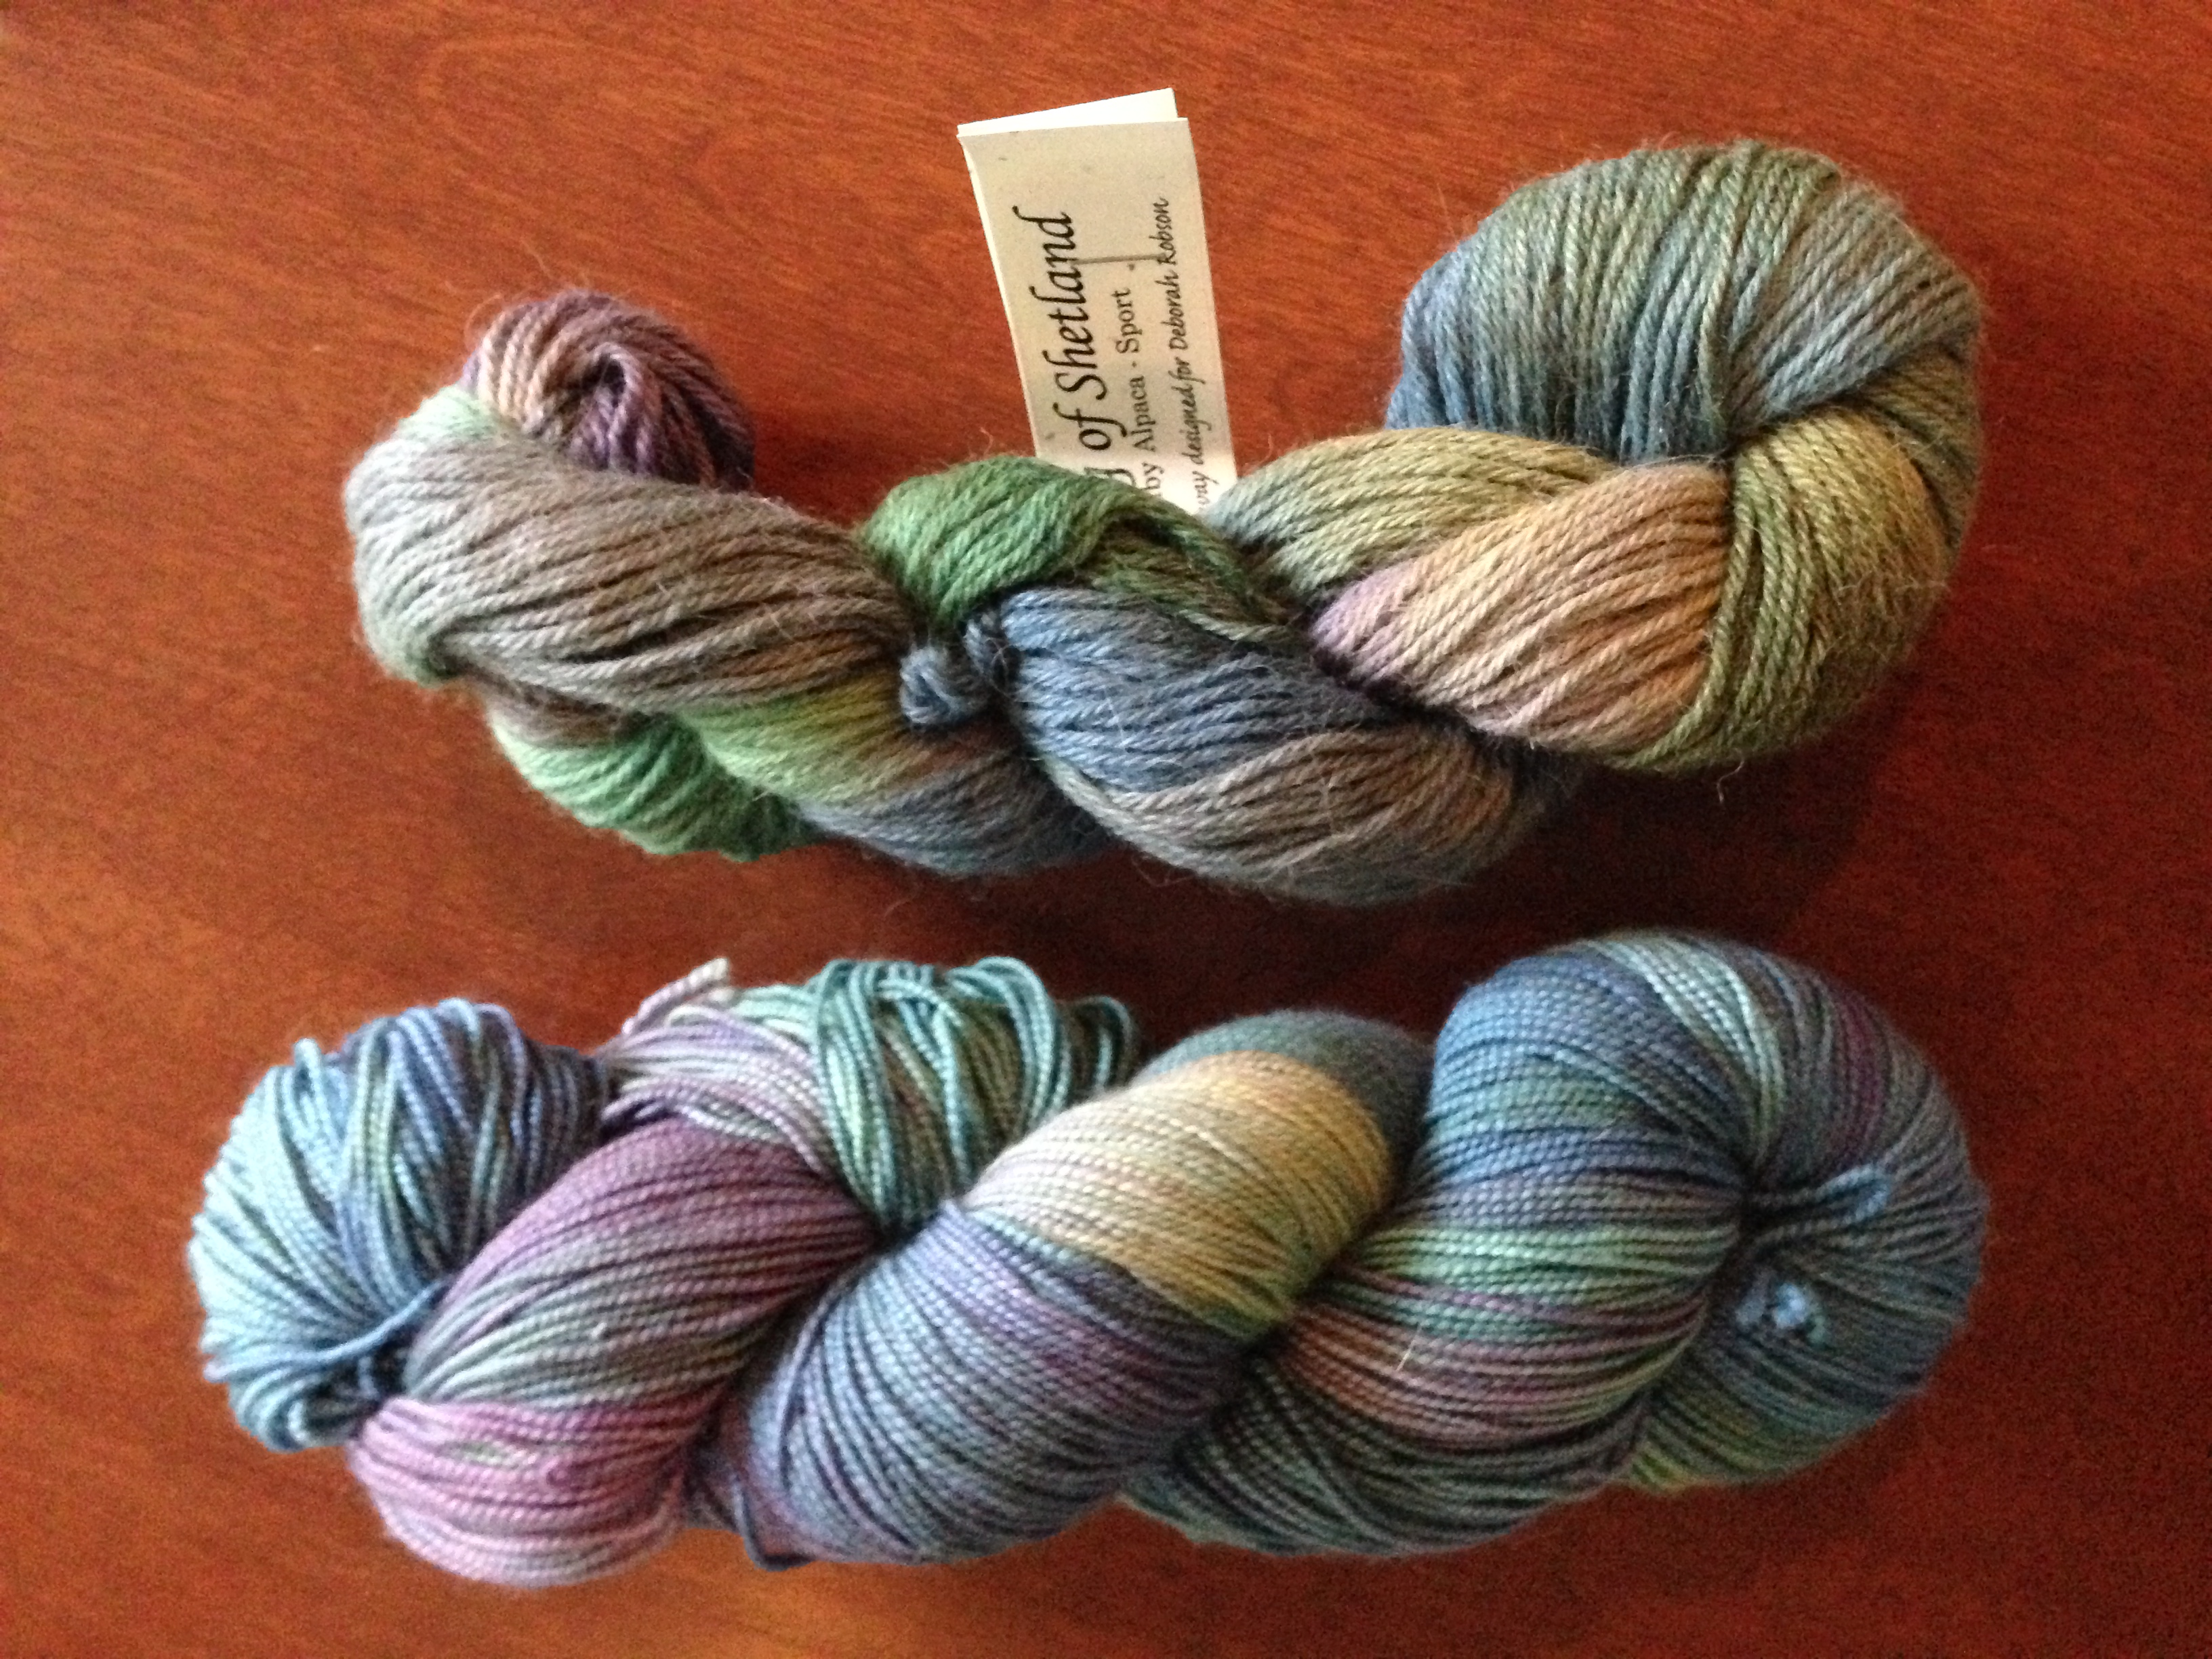 Dreaming of Shetland by Potluck yarn, on top.  Anne's skein on the bottom.  I think I am going to have a pair of socks to go with my Dreaming of Shetland shawl!